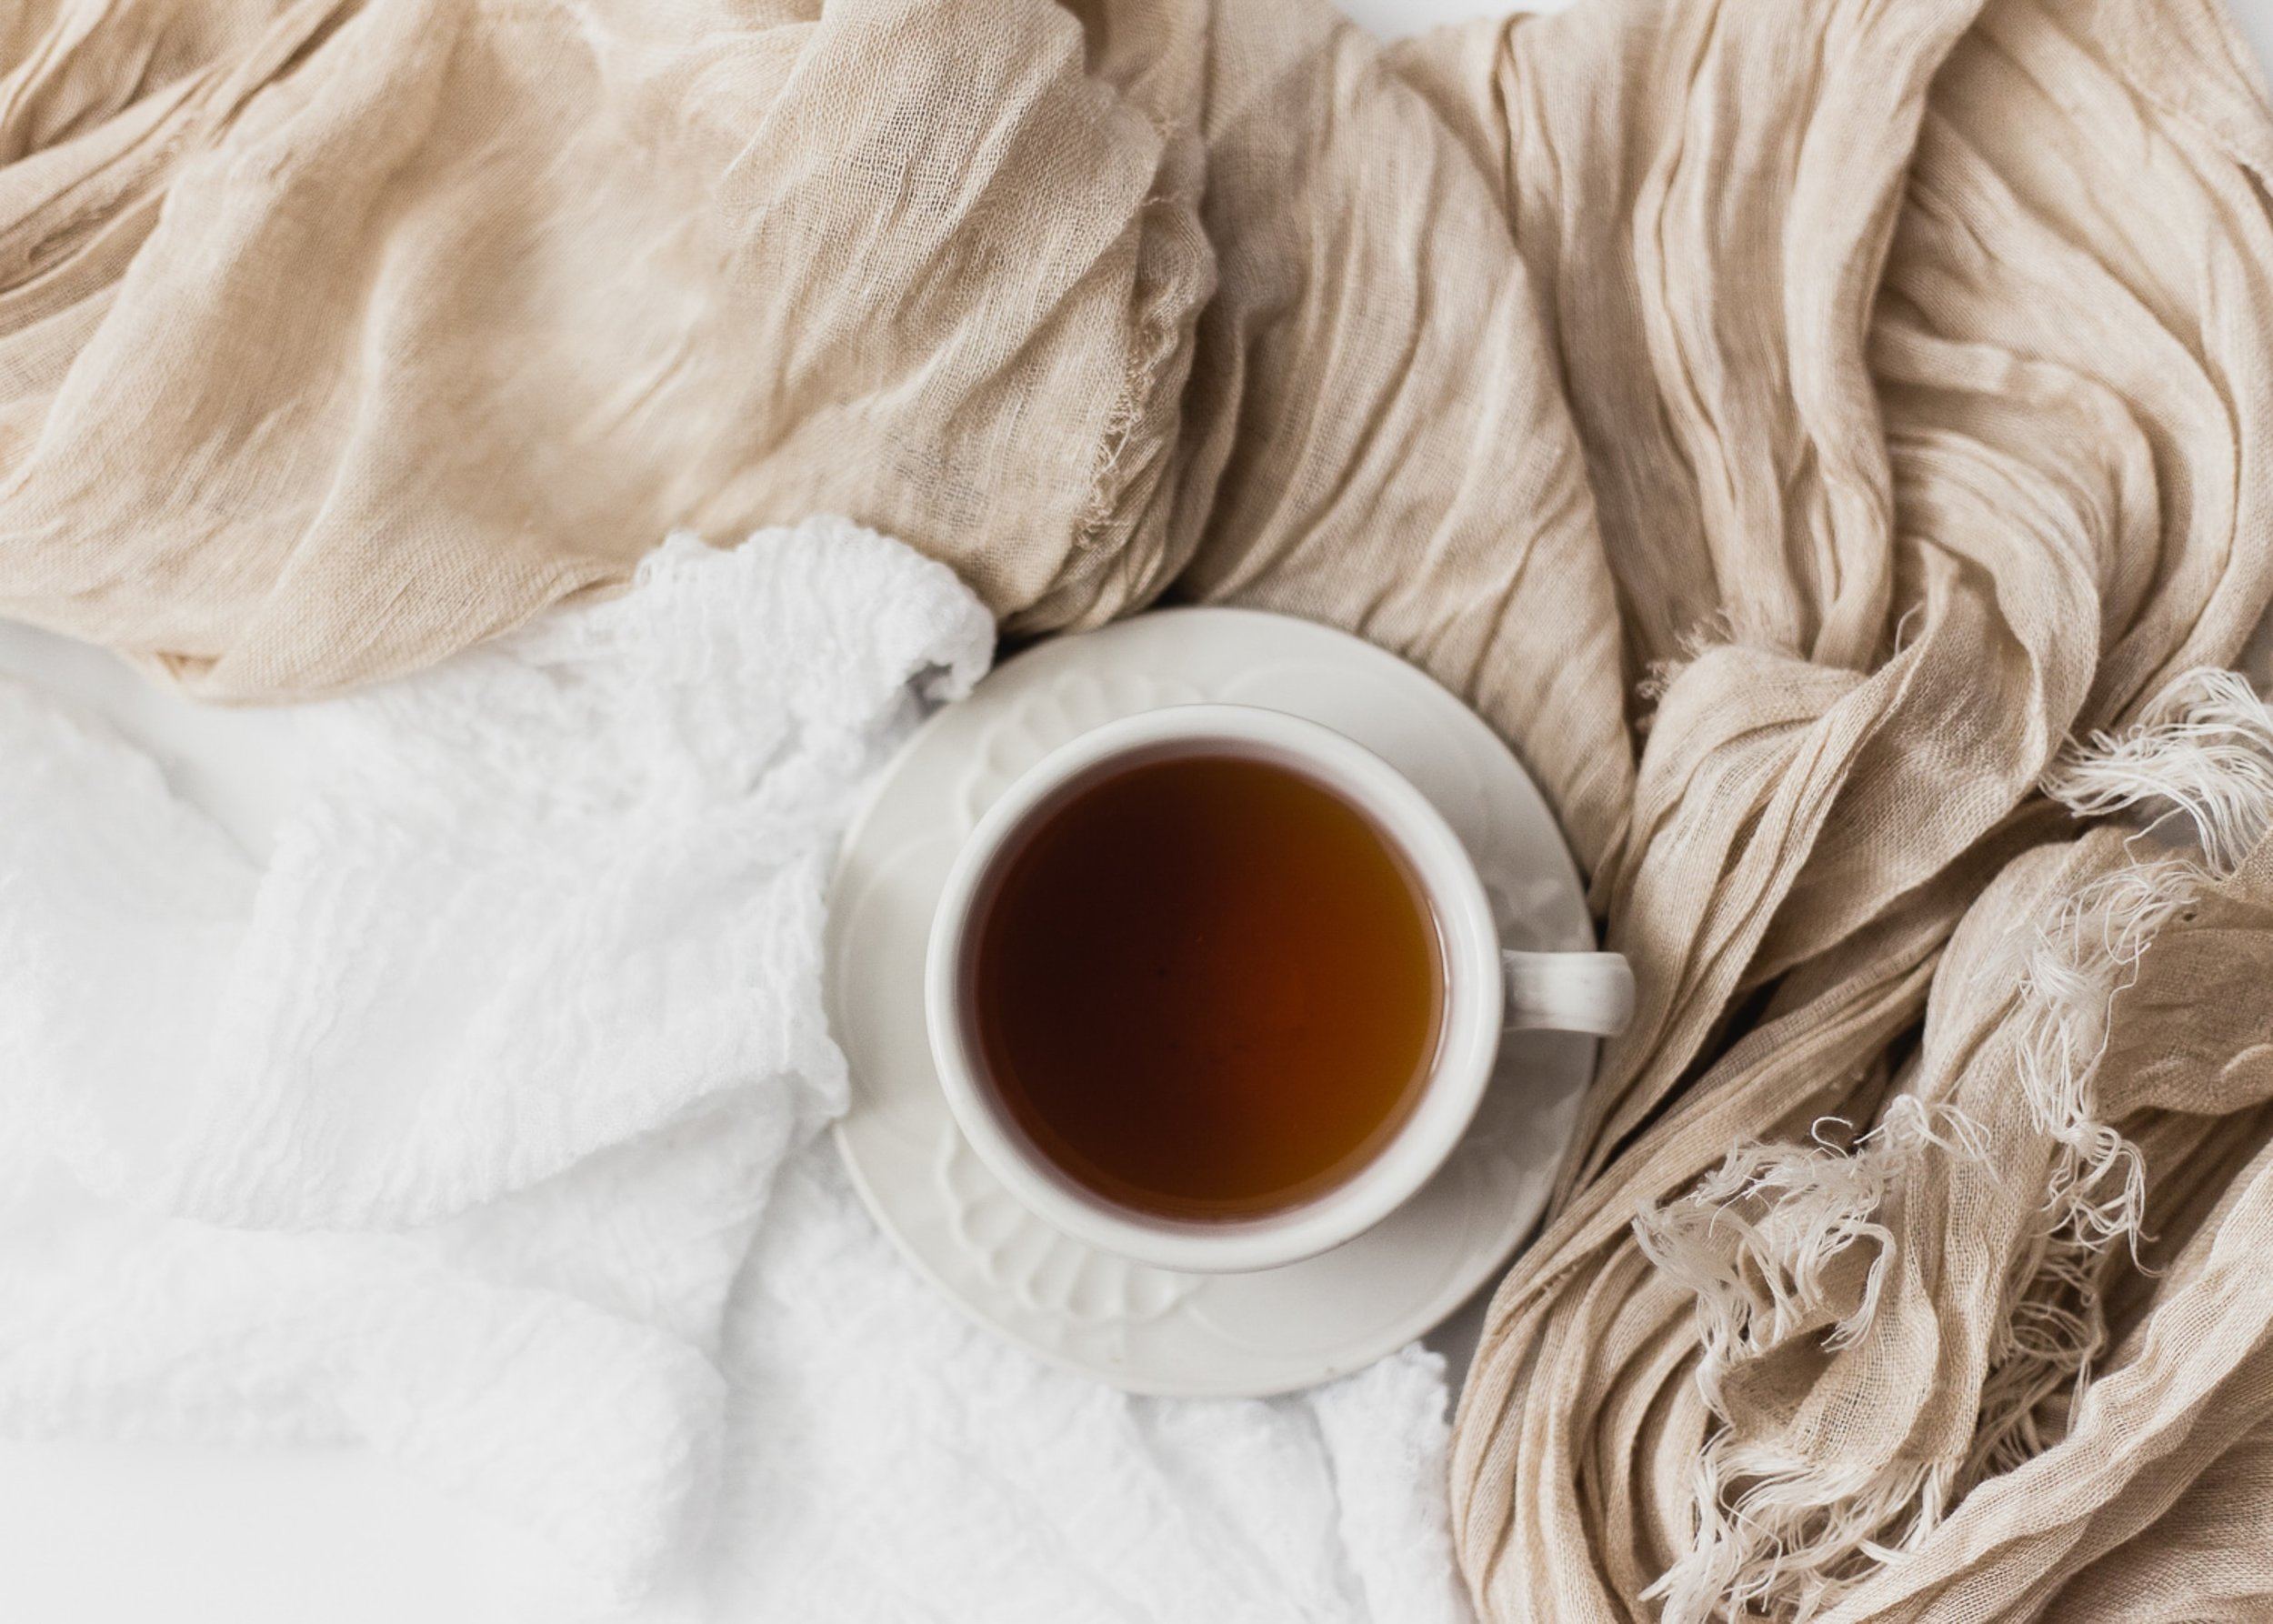 MINDFUL LIVING ROOTED IN SELF-CARE - Grab a cup of tea and read through with ease. These posts are curated to help you slow down, live in gratitude and take care.